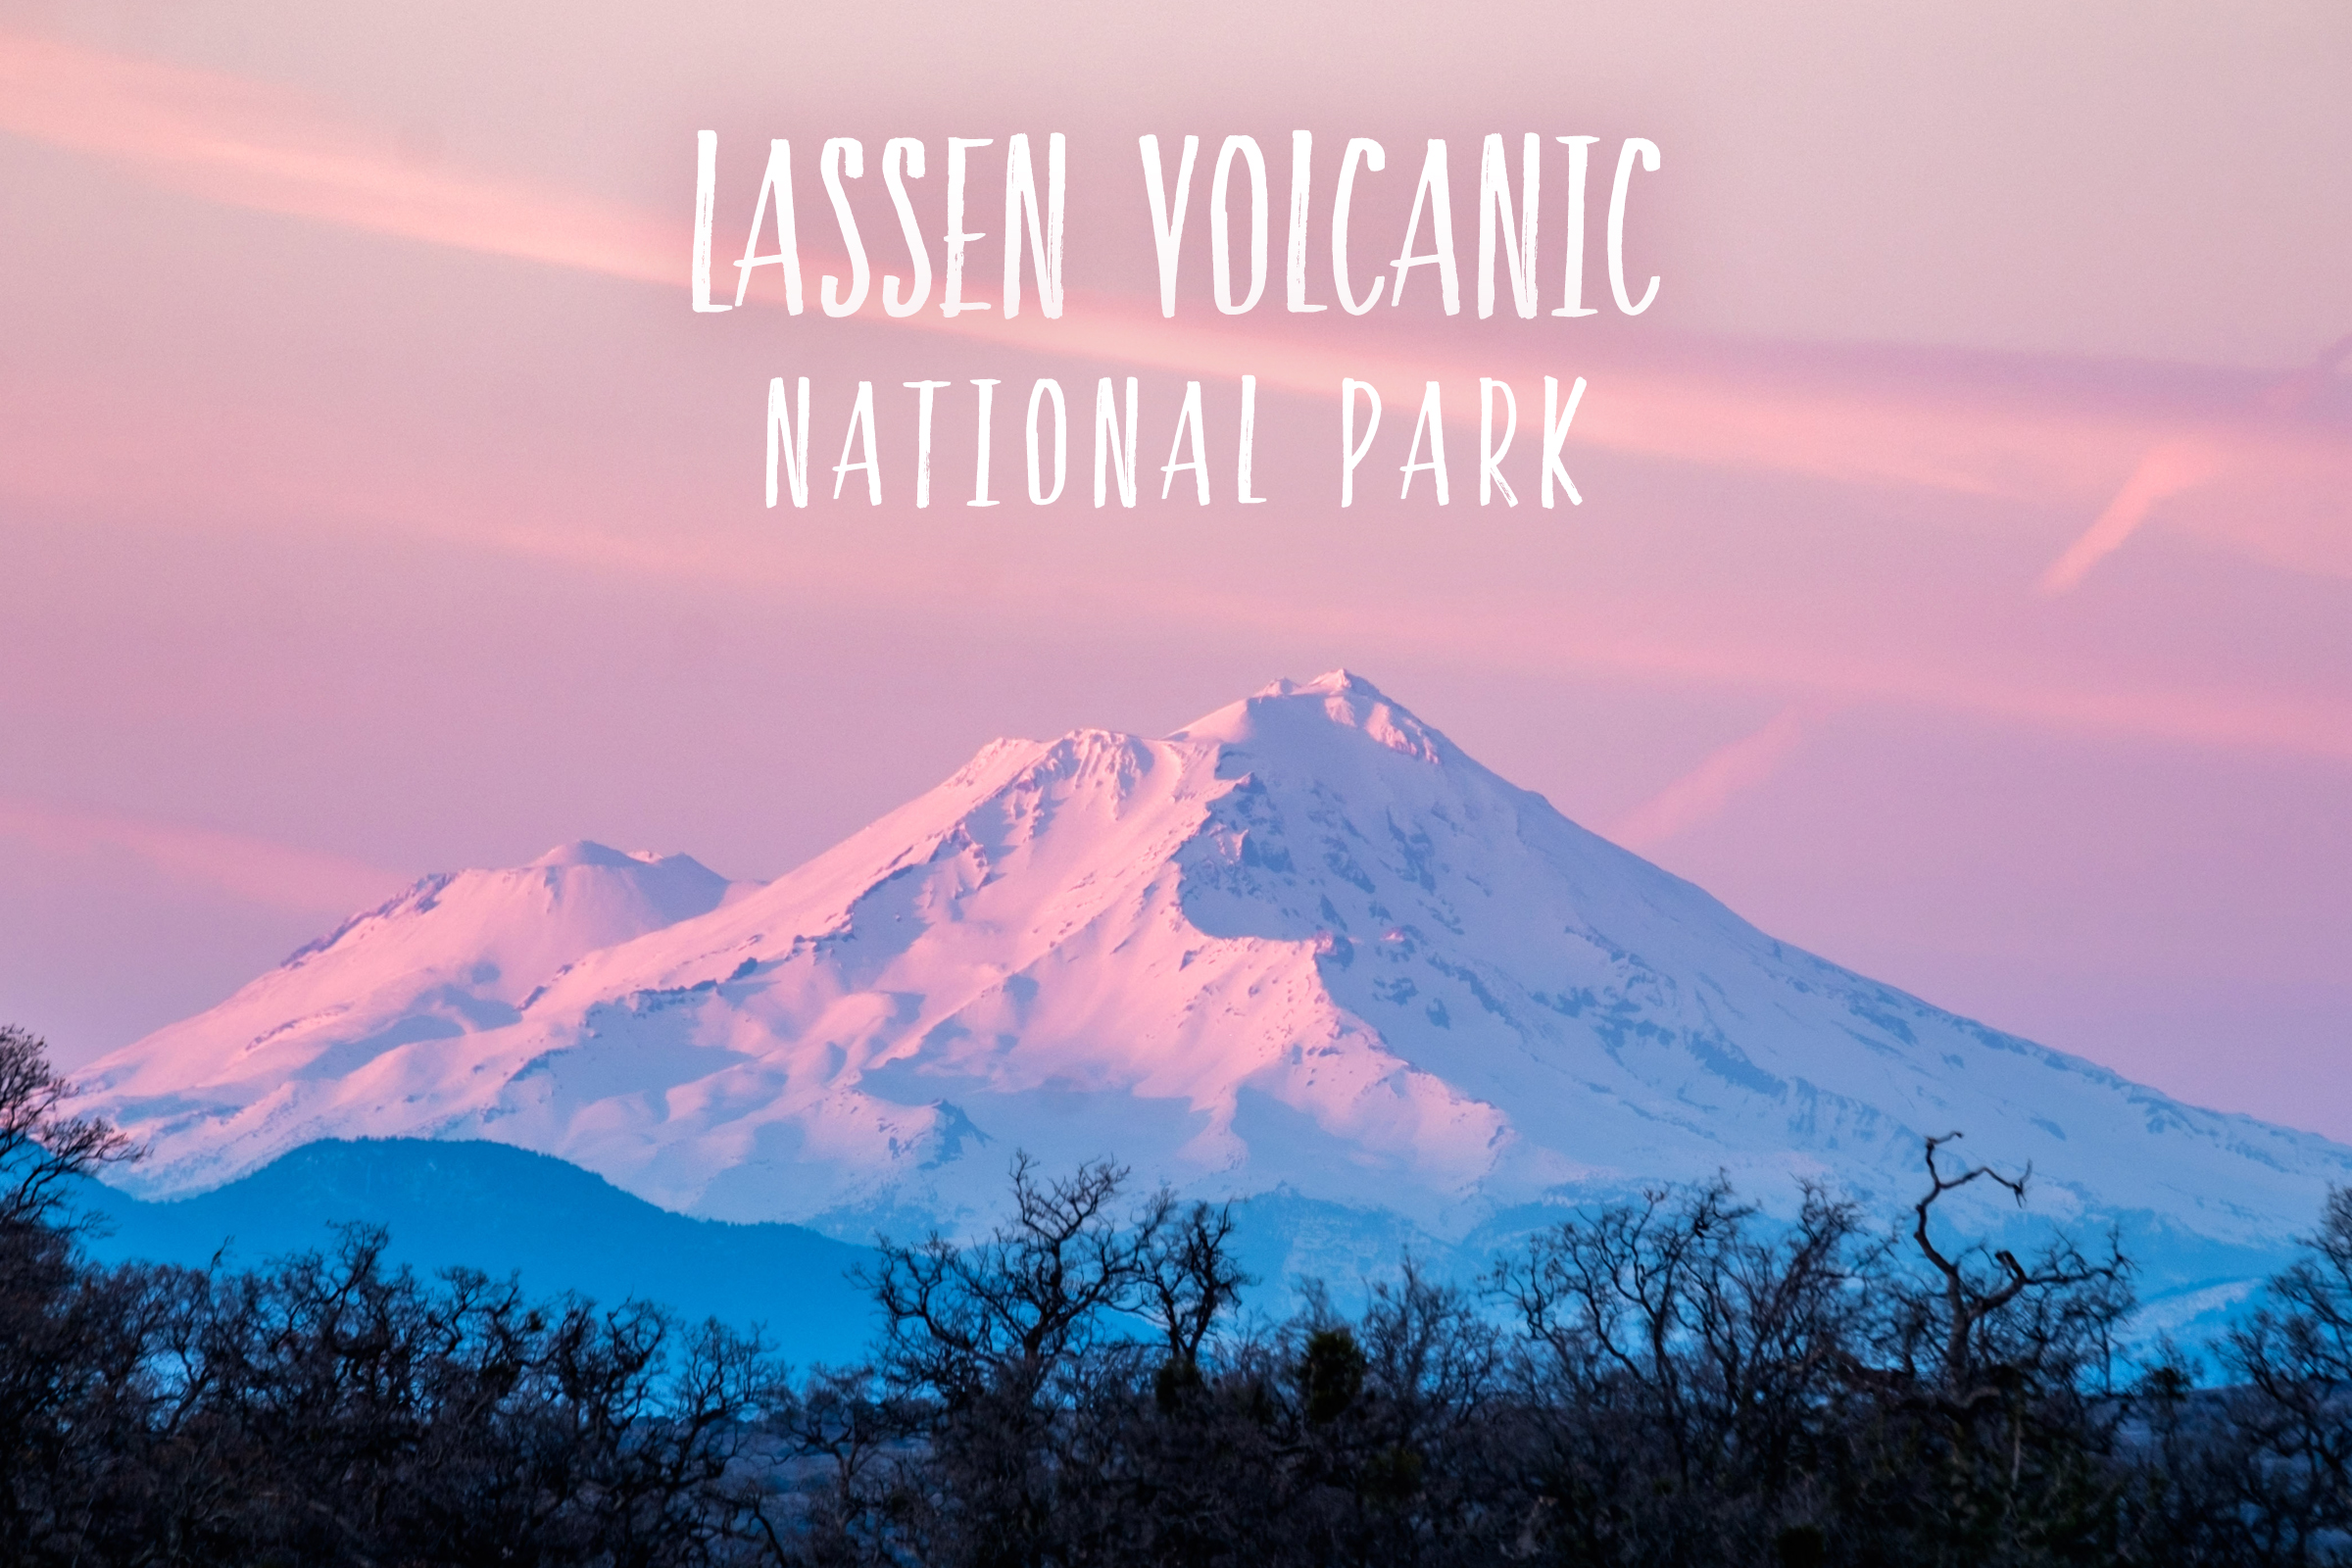 Park 58/59: Lassen Volcanic National Park in California